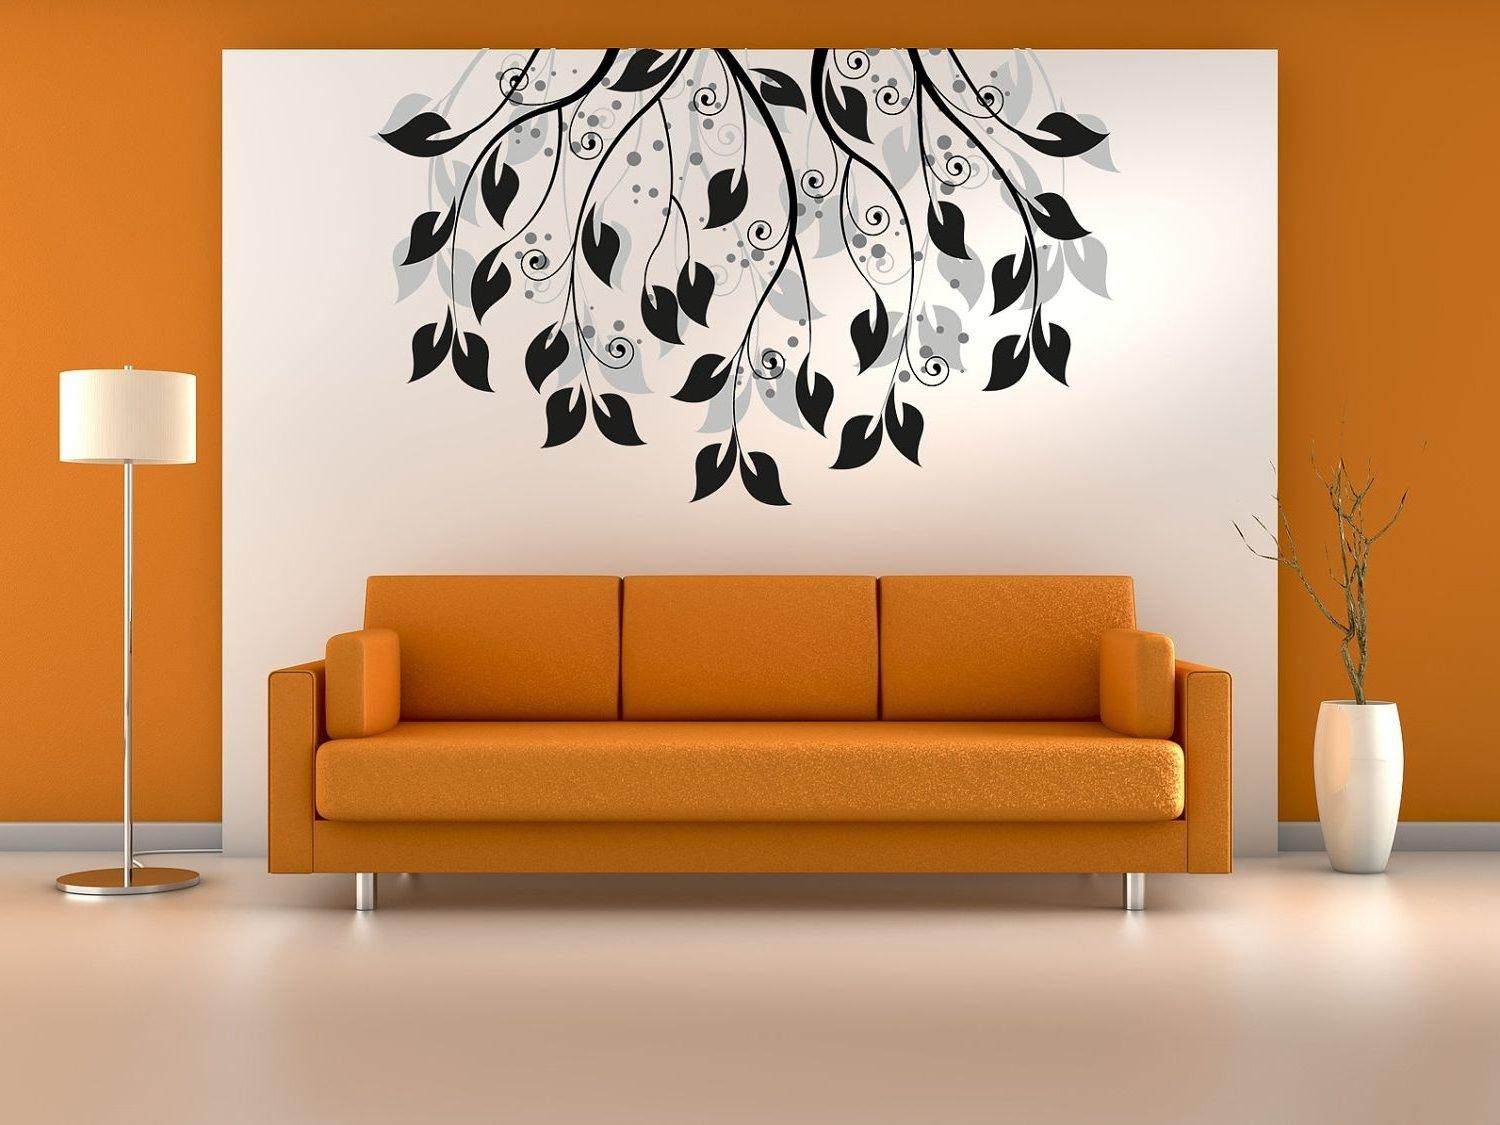 Living Room Wall Art Decals Mahogany Wood Book Rack White Wall With Regard To Metal Chandelier Wall Art (Image 13 of 20)